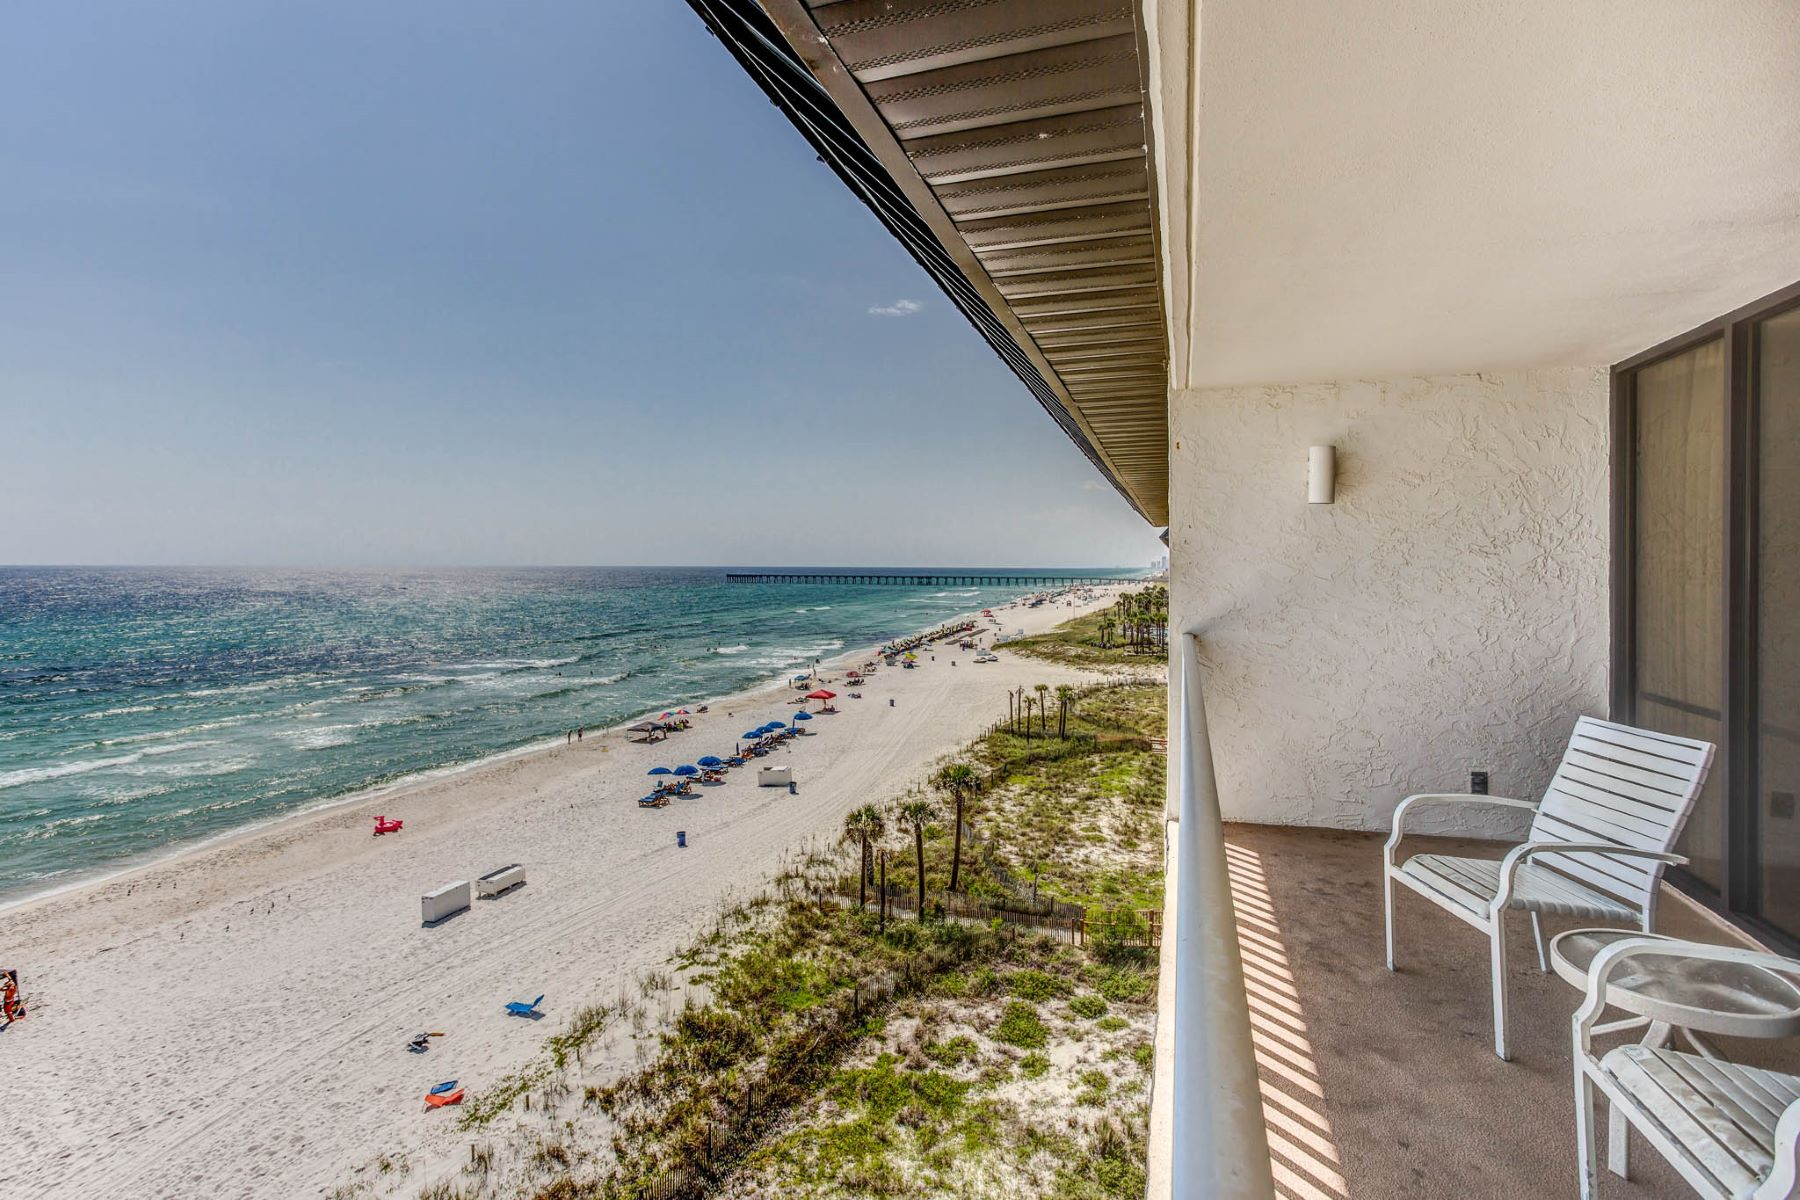 コンドミニアム のために 売買 アット RARE 6TH FLOOR PENTHOUSE IN EXCLUSIVE LOW-RISE BUILDING 11757 Front Beach Road L606 Panama City Beach, フロリダ, 32407 アメリカ合衆国